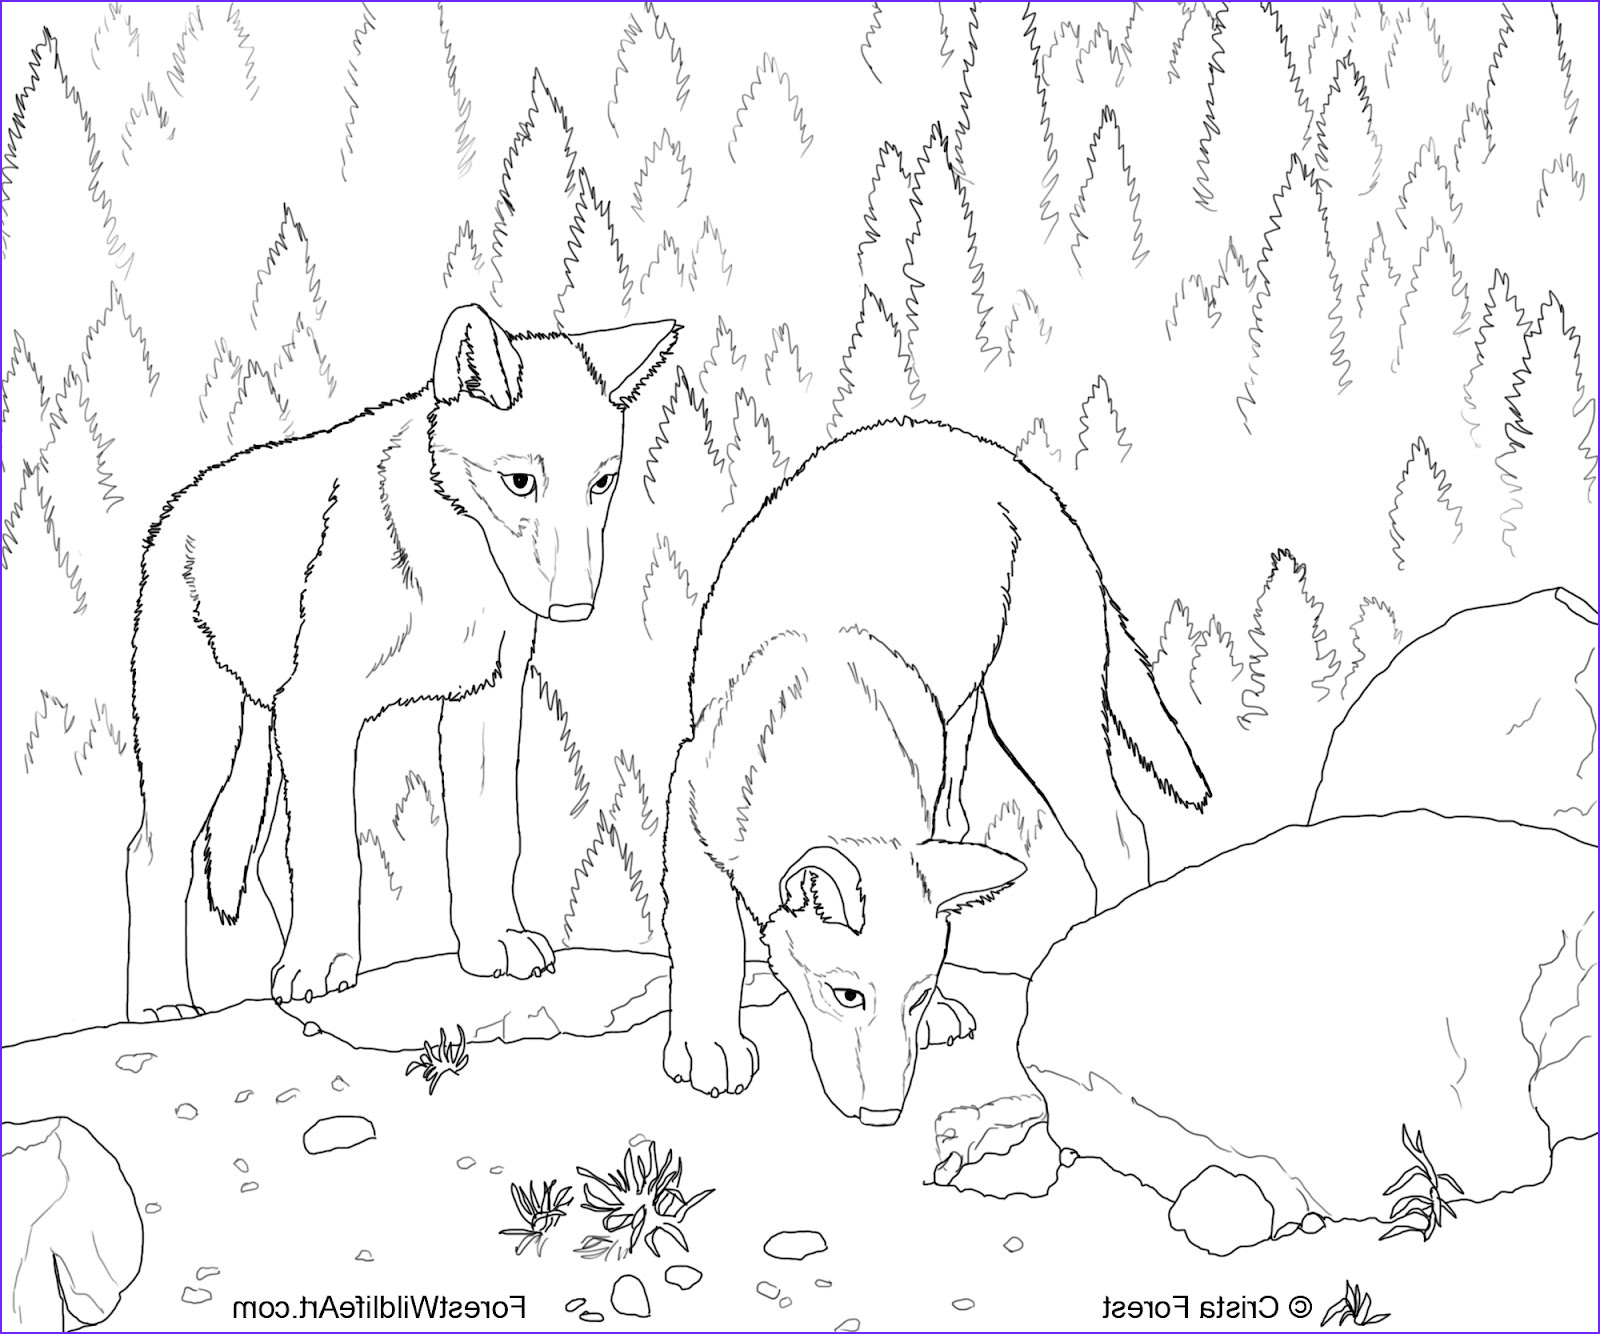 Wolves Coloring Book Awesome Gallery Crista forest S Animals & Art Wolf Pups Coloring Book Page